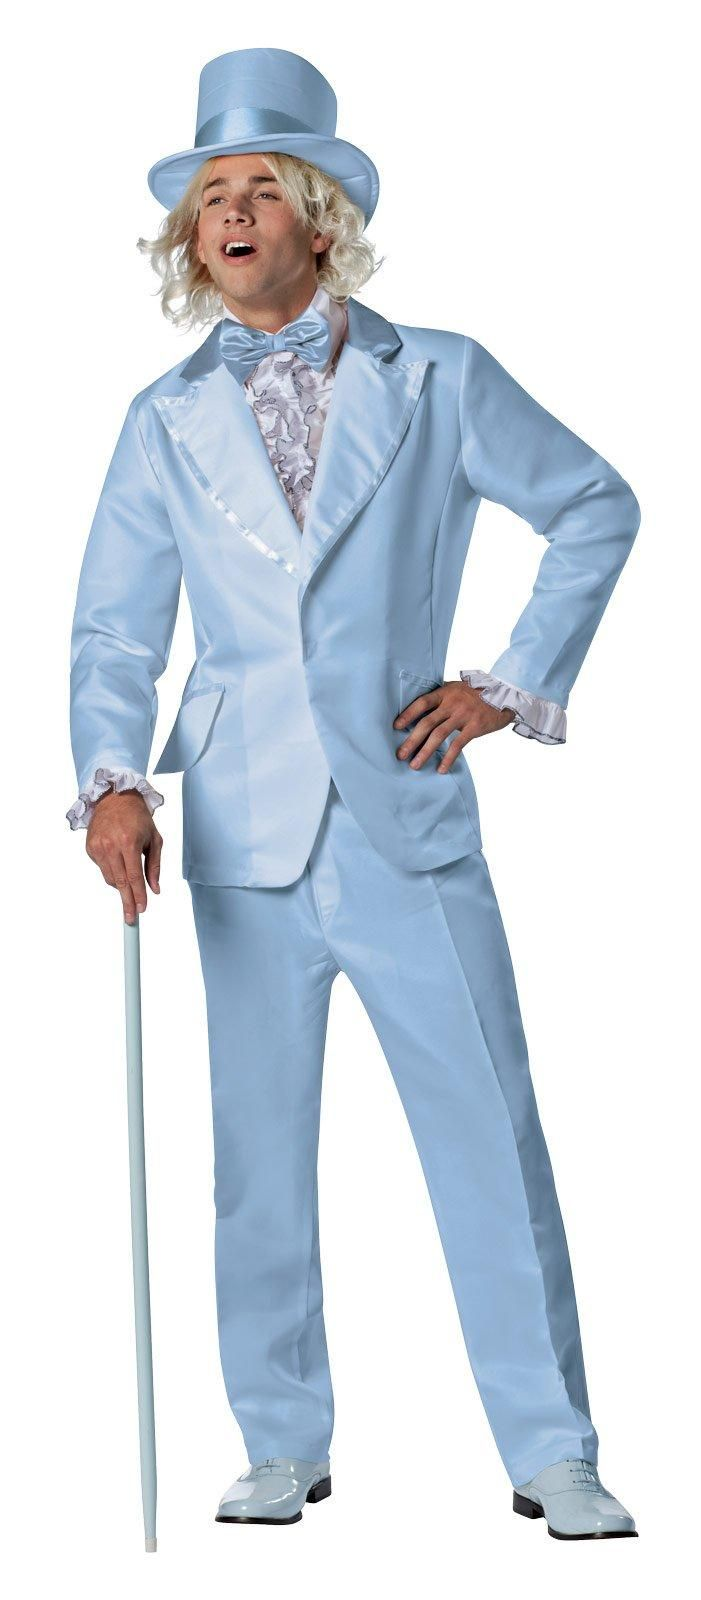 Dumb and Dumber Harry Blue Tuxedo Adult Costume from CostumeExpress.com